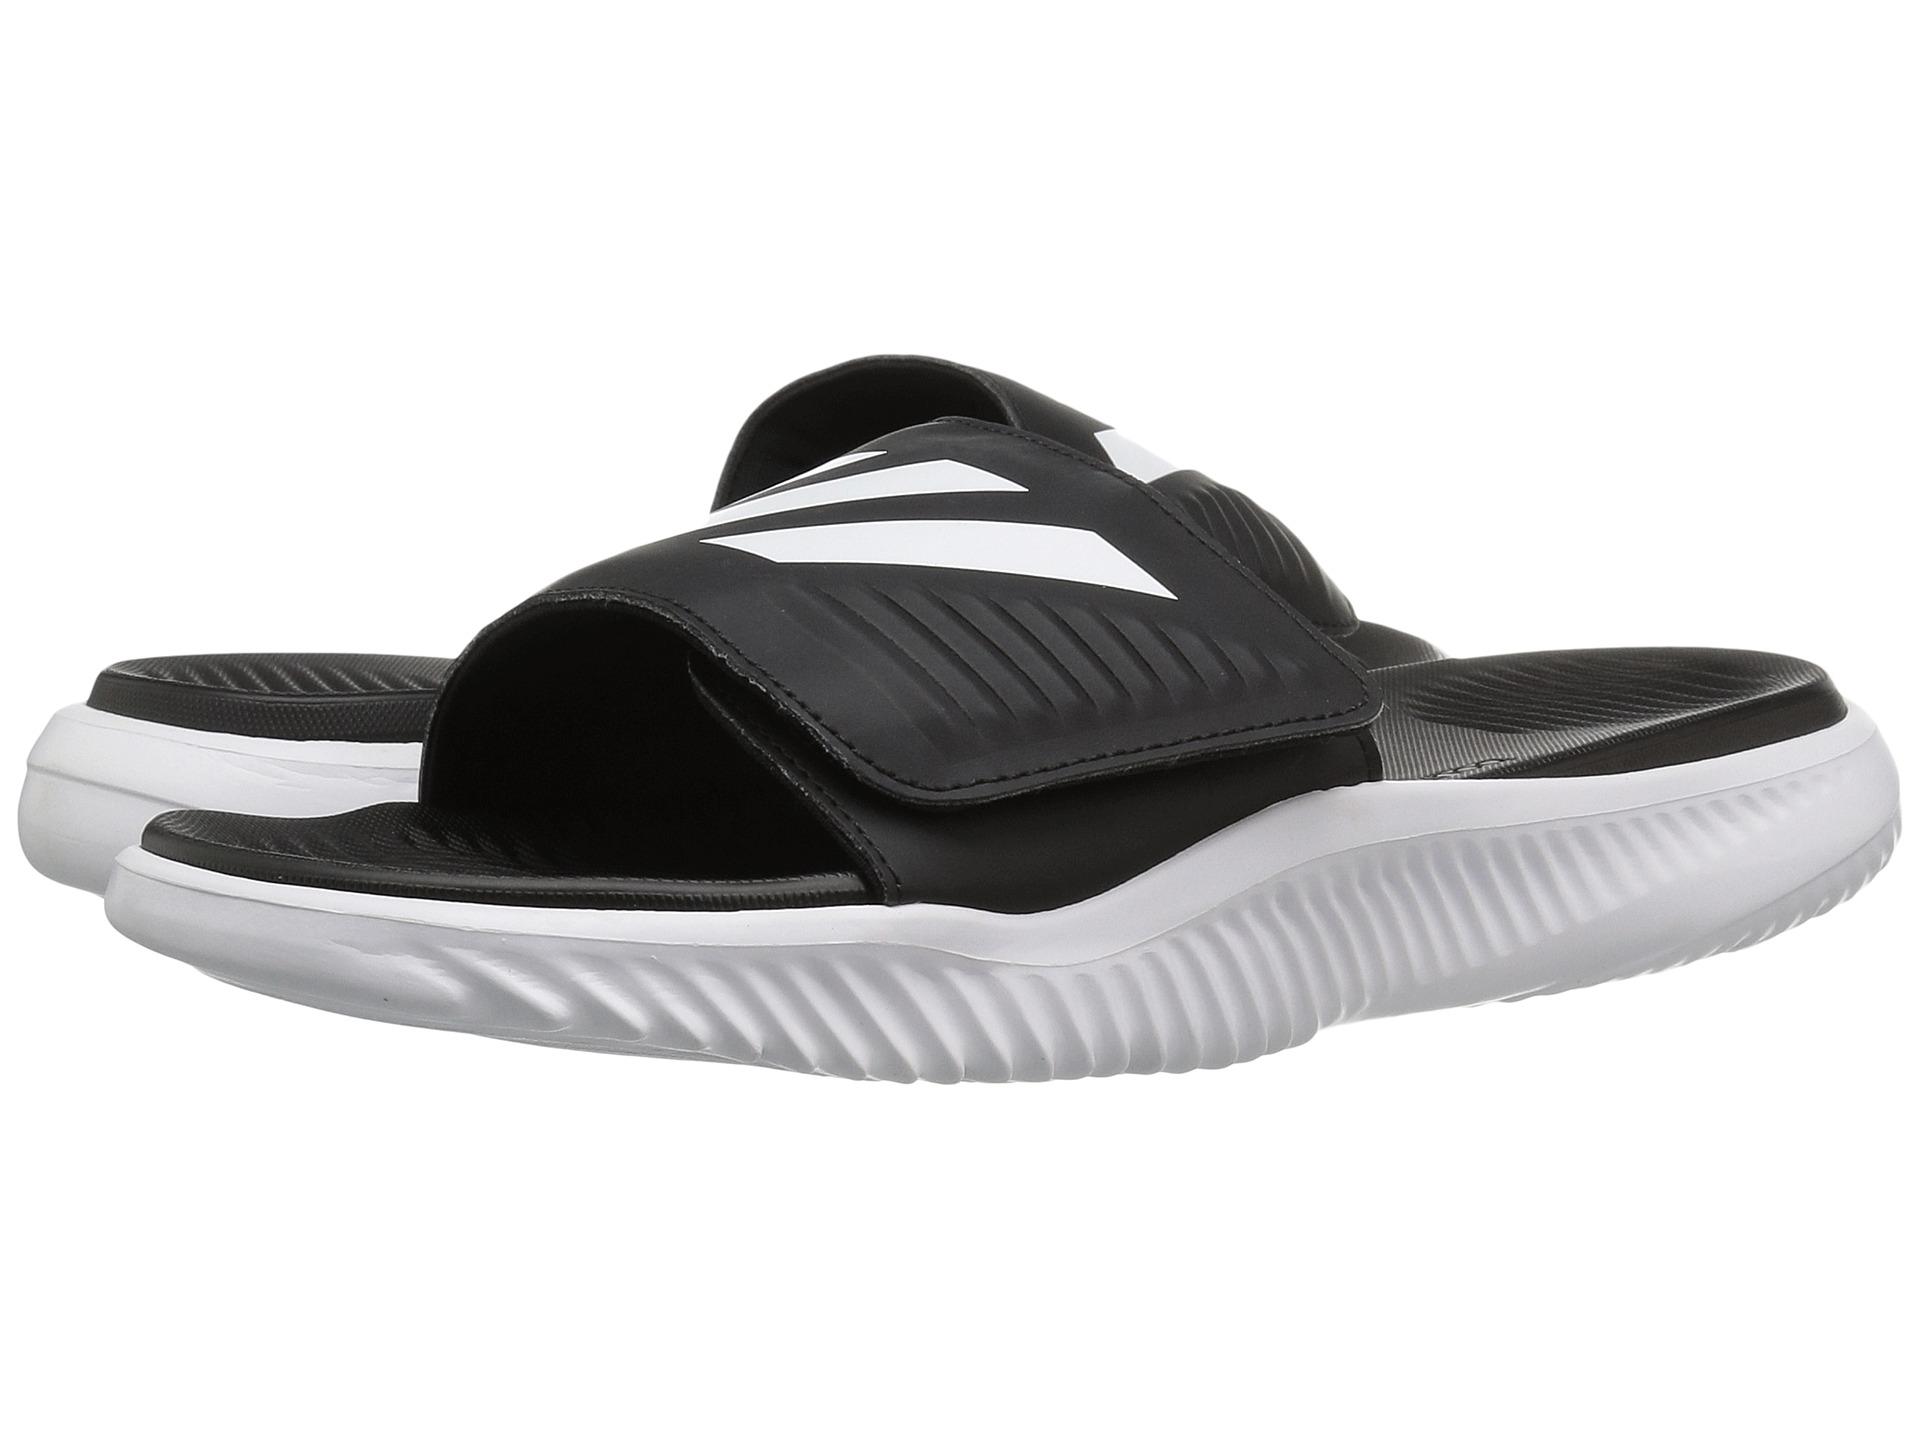 fda0536ce23 Buy adidas comfort slides   OFF45% Discounted